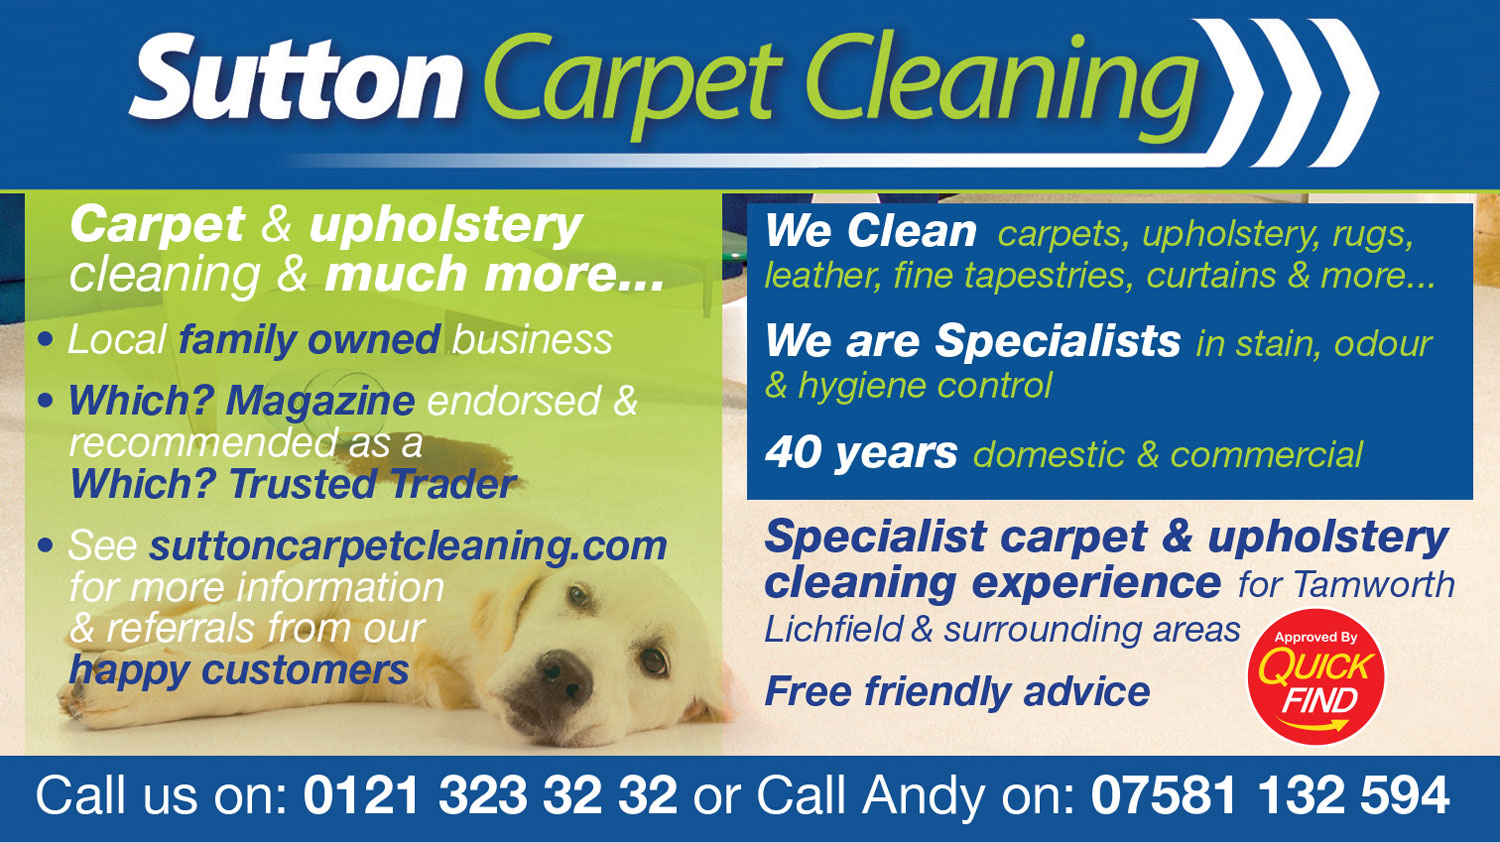 Sutton Carpet Cleaning